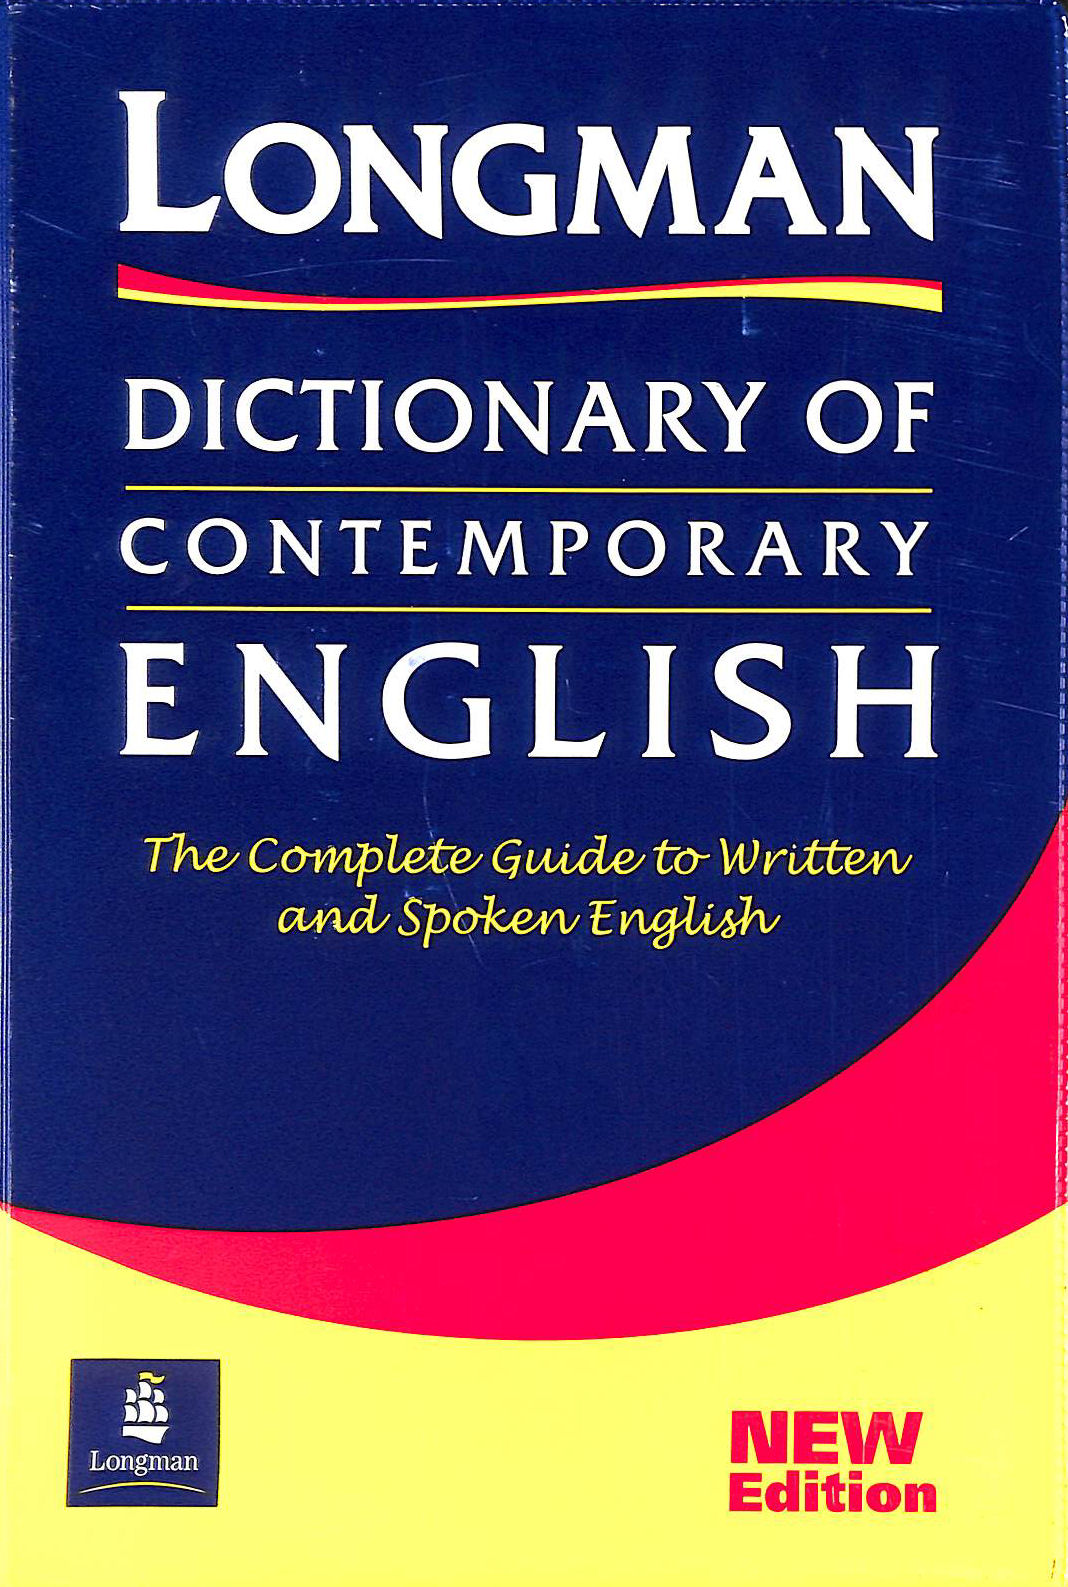 Image for Longman Dictionary of Contemporary English